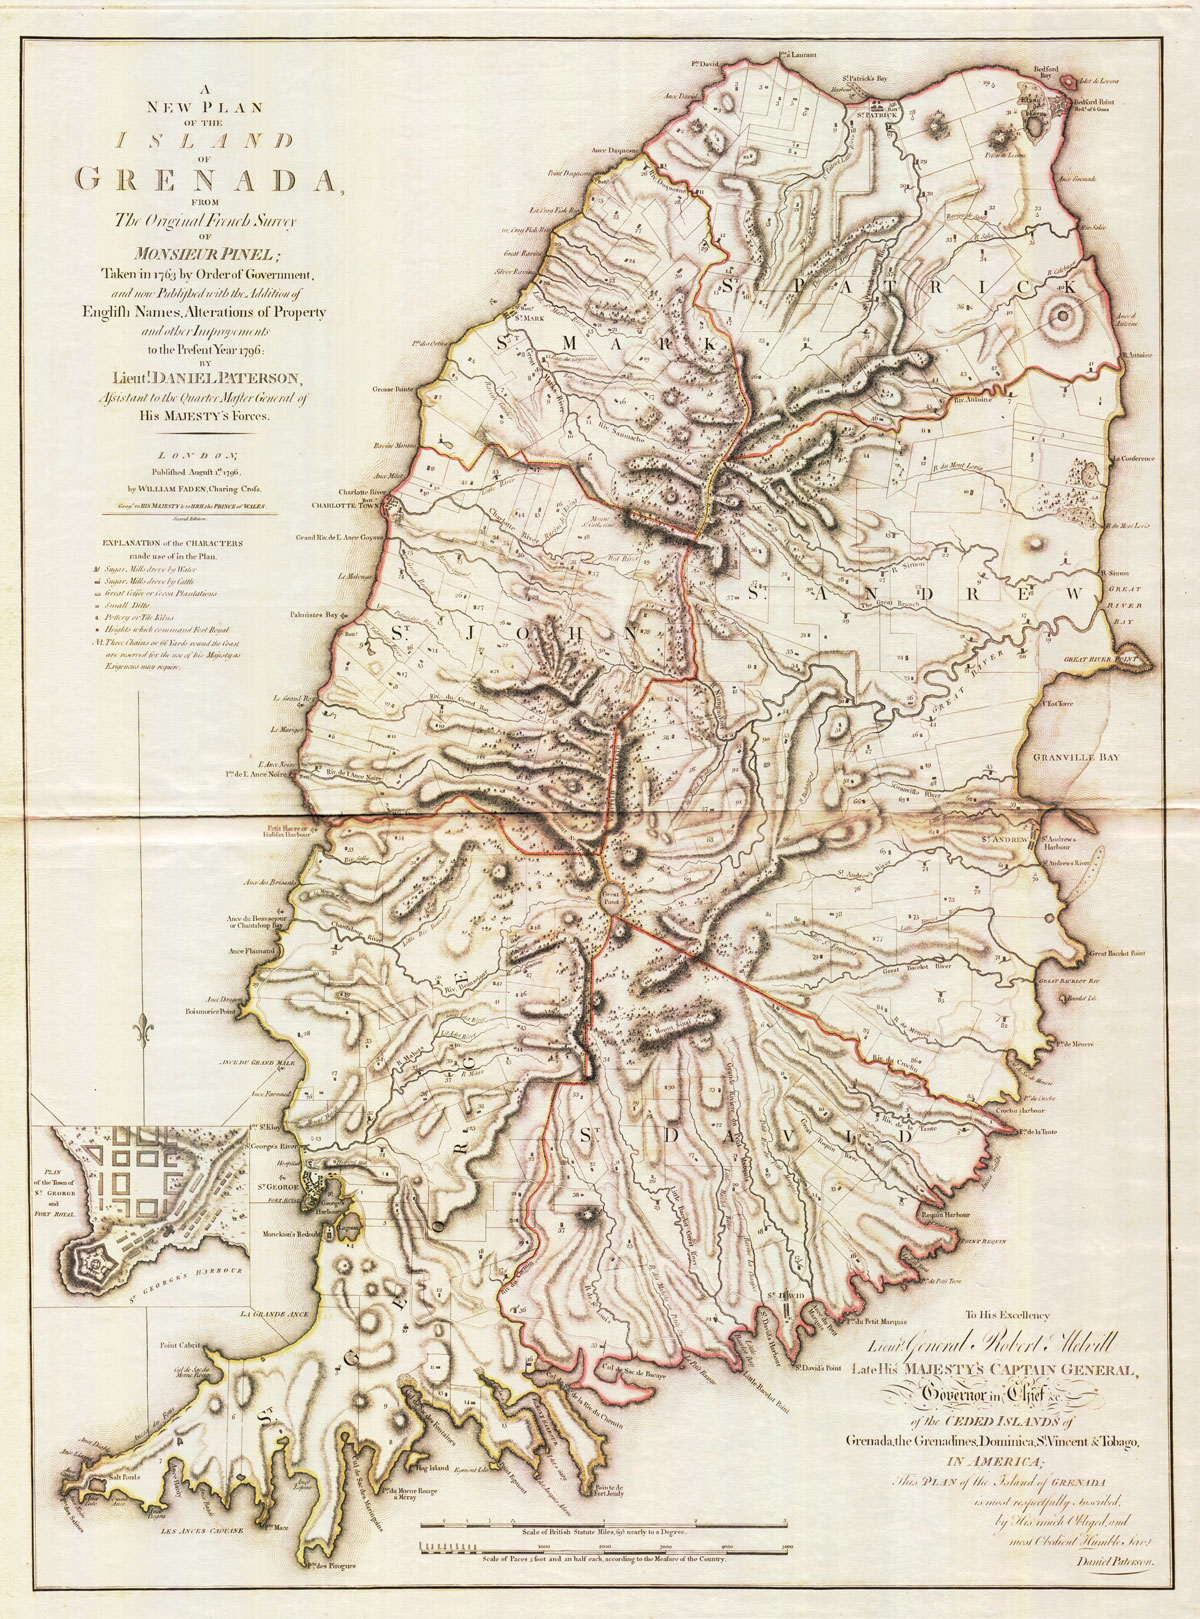 PATTERSON Lieut D. A New Plan of the Island of Grenada - from the original French survey of Monsieur Pinel taken in 1763 by order of Government and now published with the addition of English names, Alterations of Property and other improvements to the present year 1780 by Lieut. Daniel Paterson, Assistant to the Quarter Master General of His Majesty